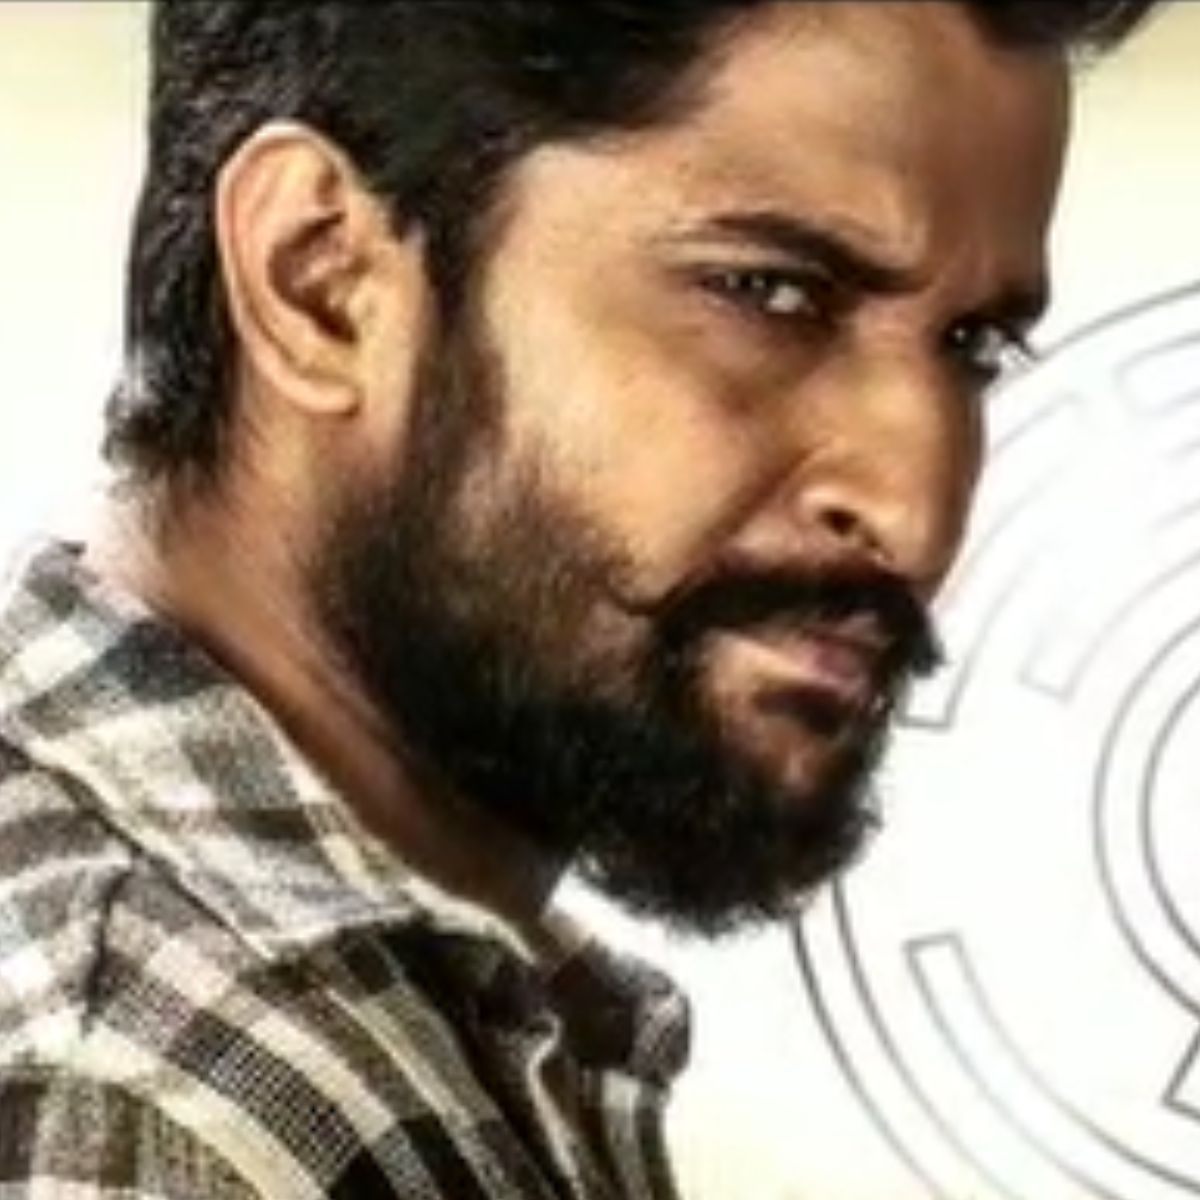 Nani S V To Release Online On September 5 Actor Says Its Time I Come Home And Thank You All Actors Upcoming Films Coming To Theaters